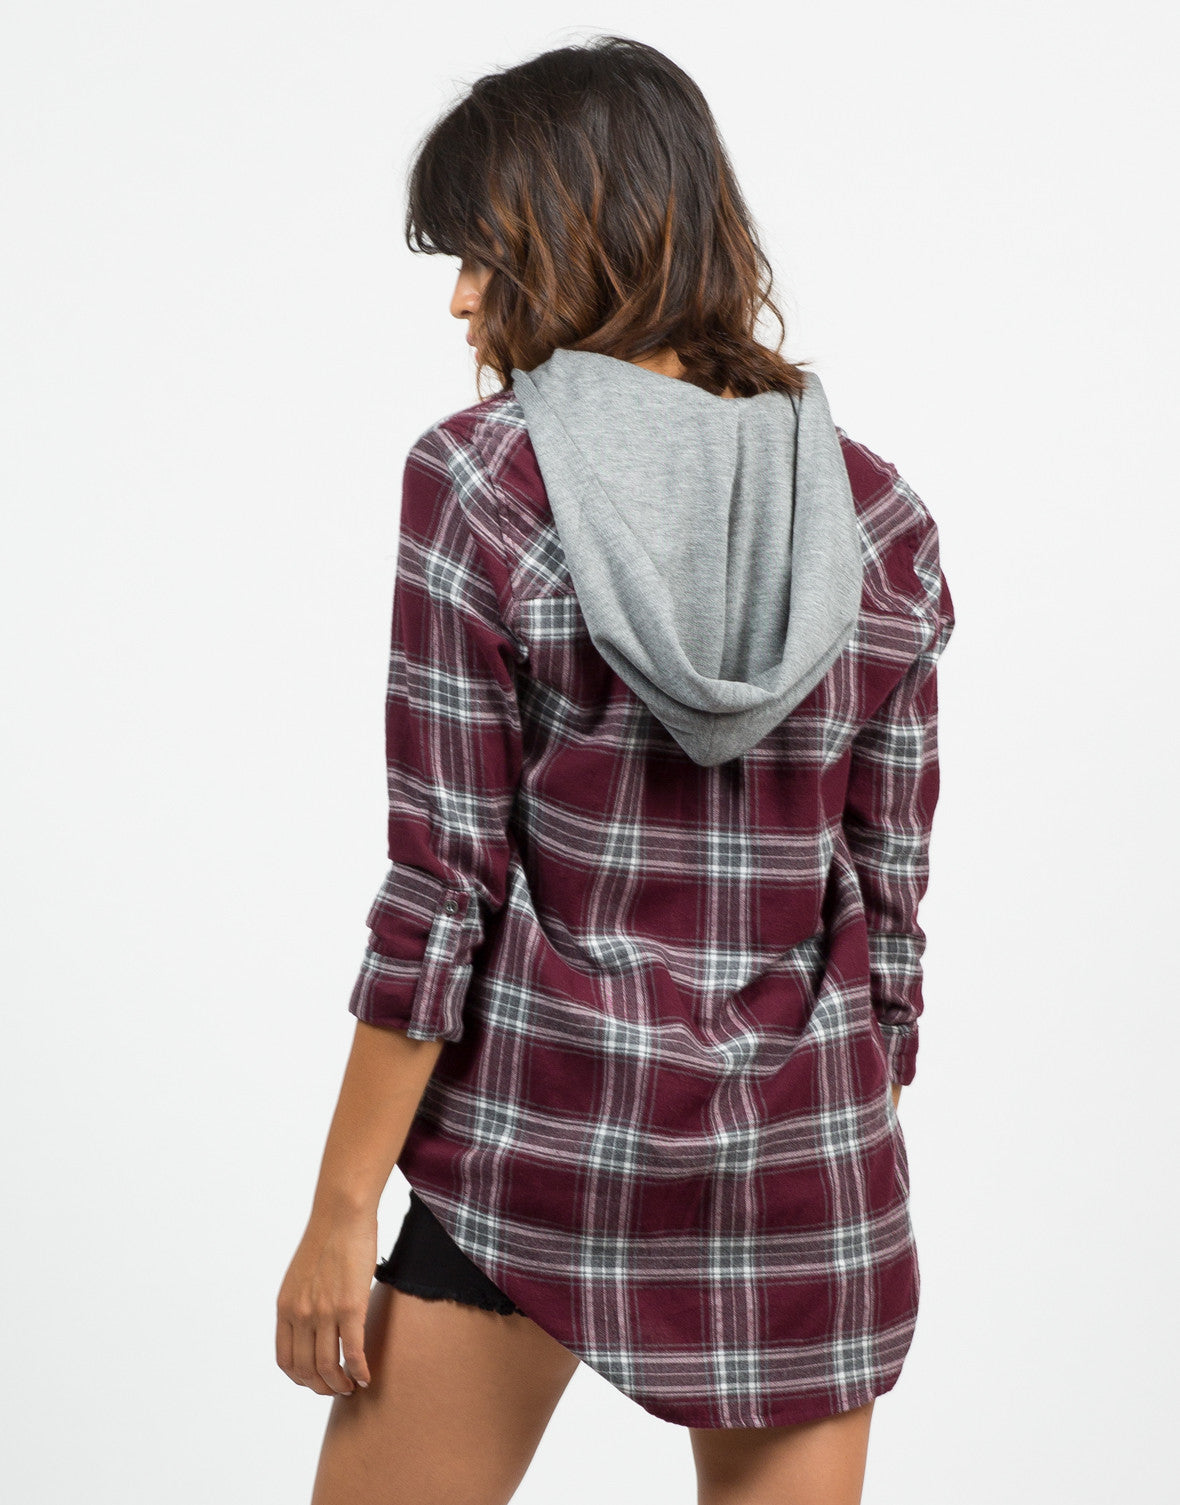 Back View of Hooded Flannel Shirt